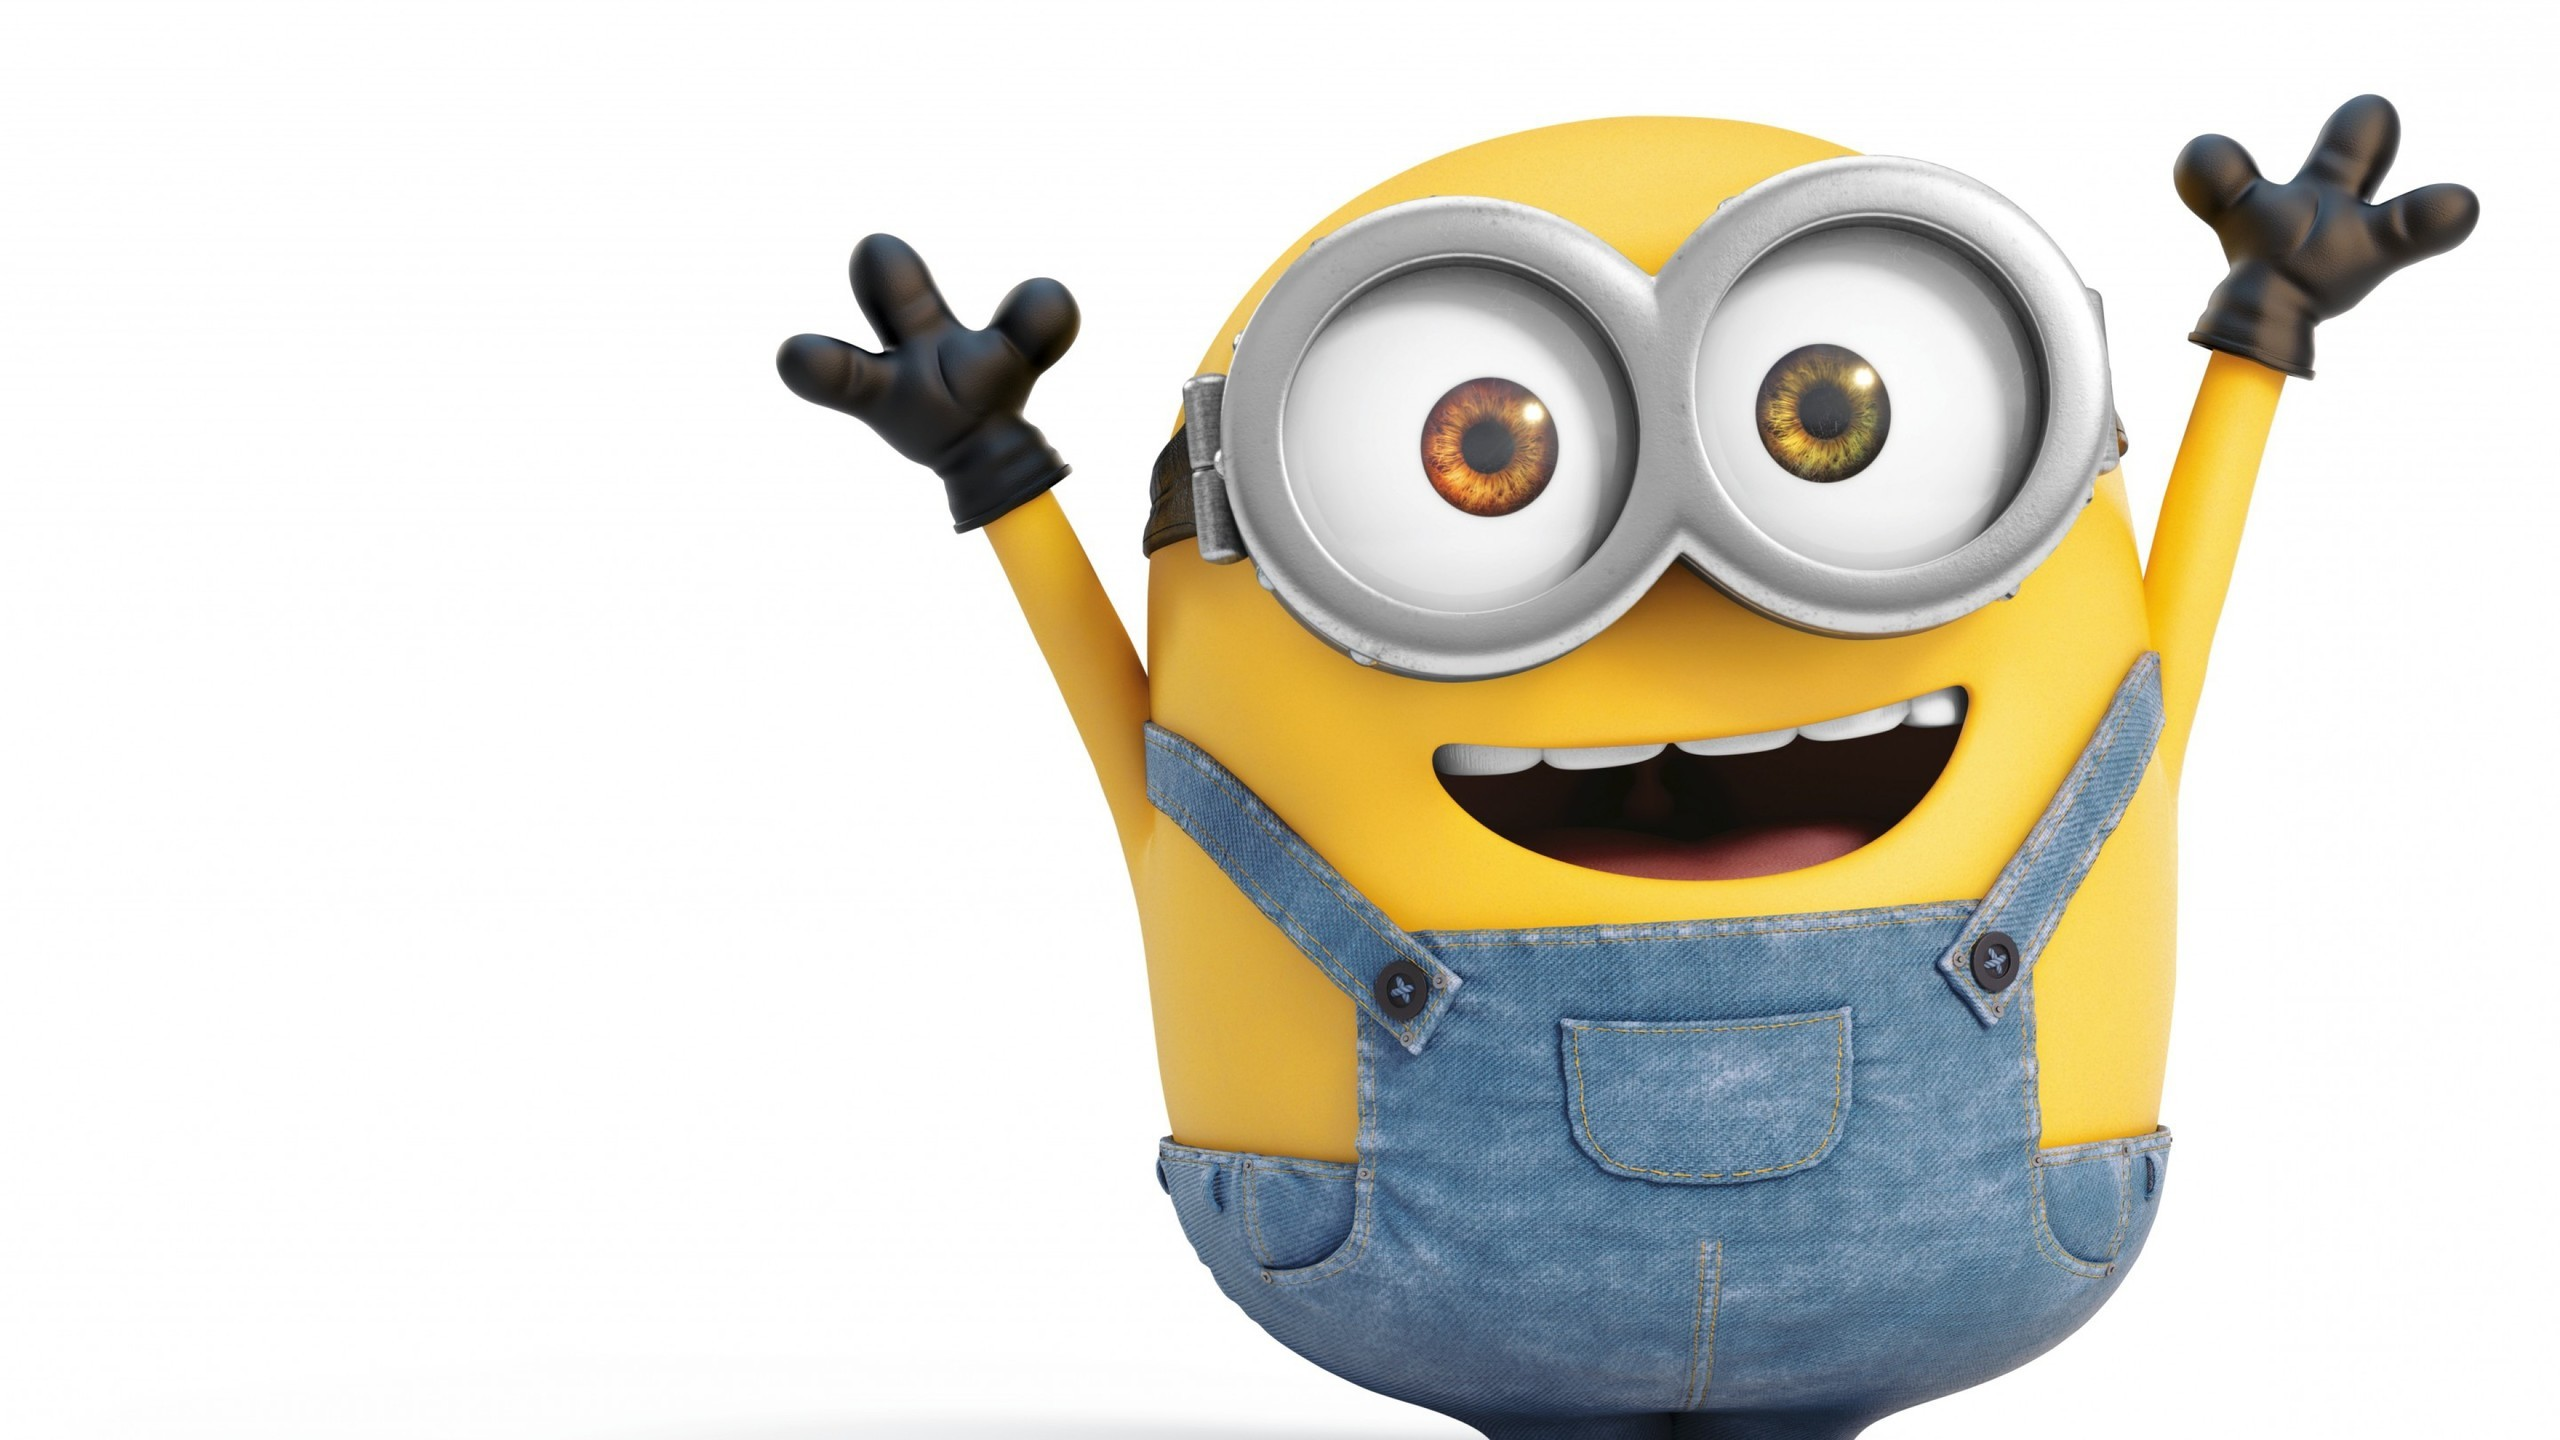 Get Live Wallpaper For Iphone Minion Bob Wallpaper 70 Images